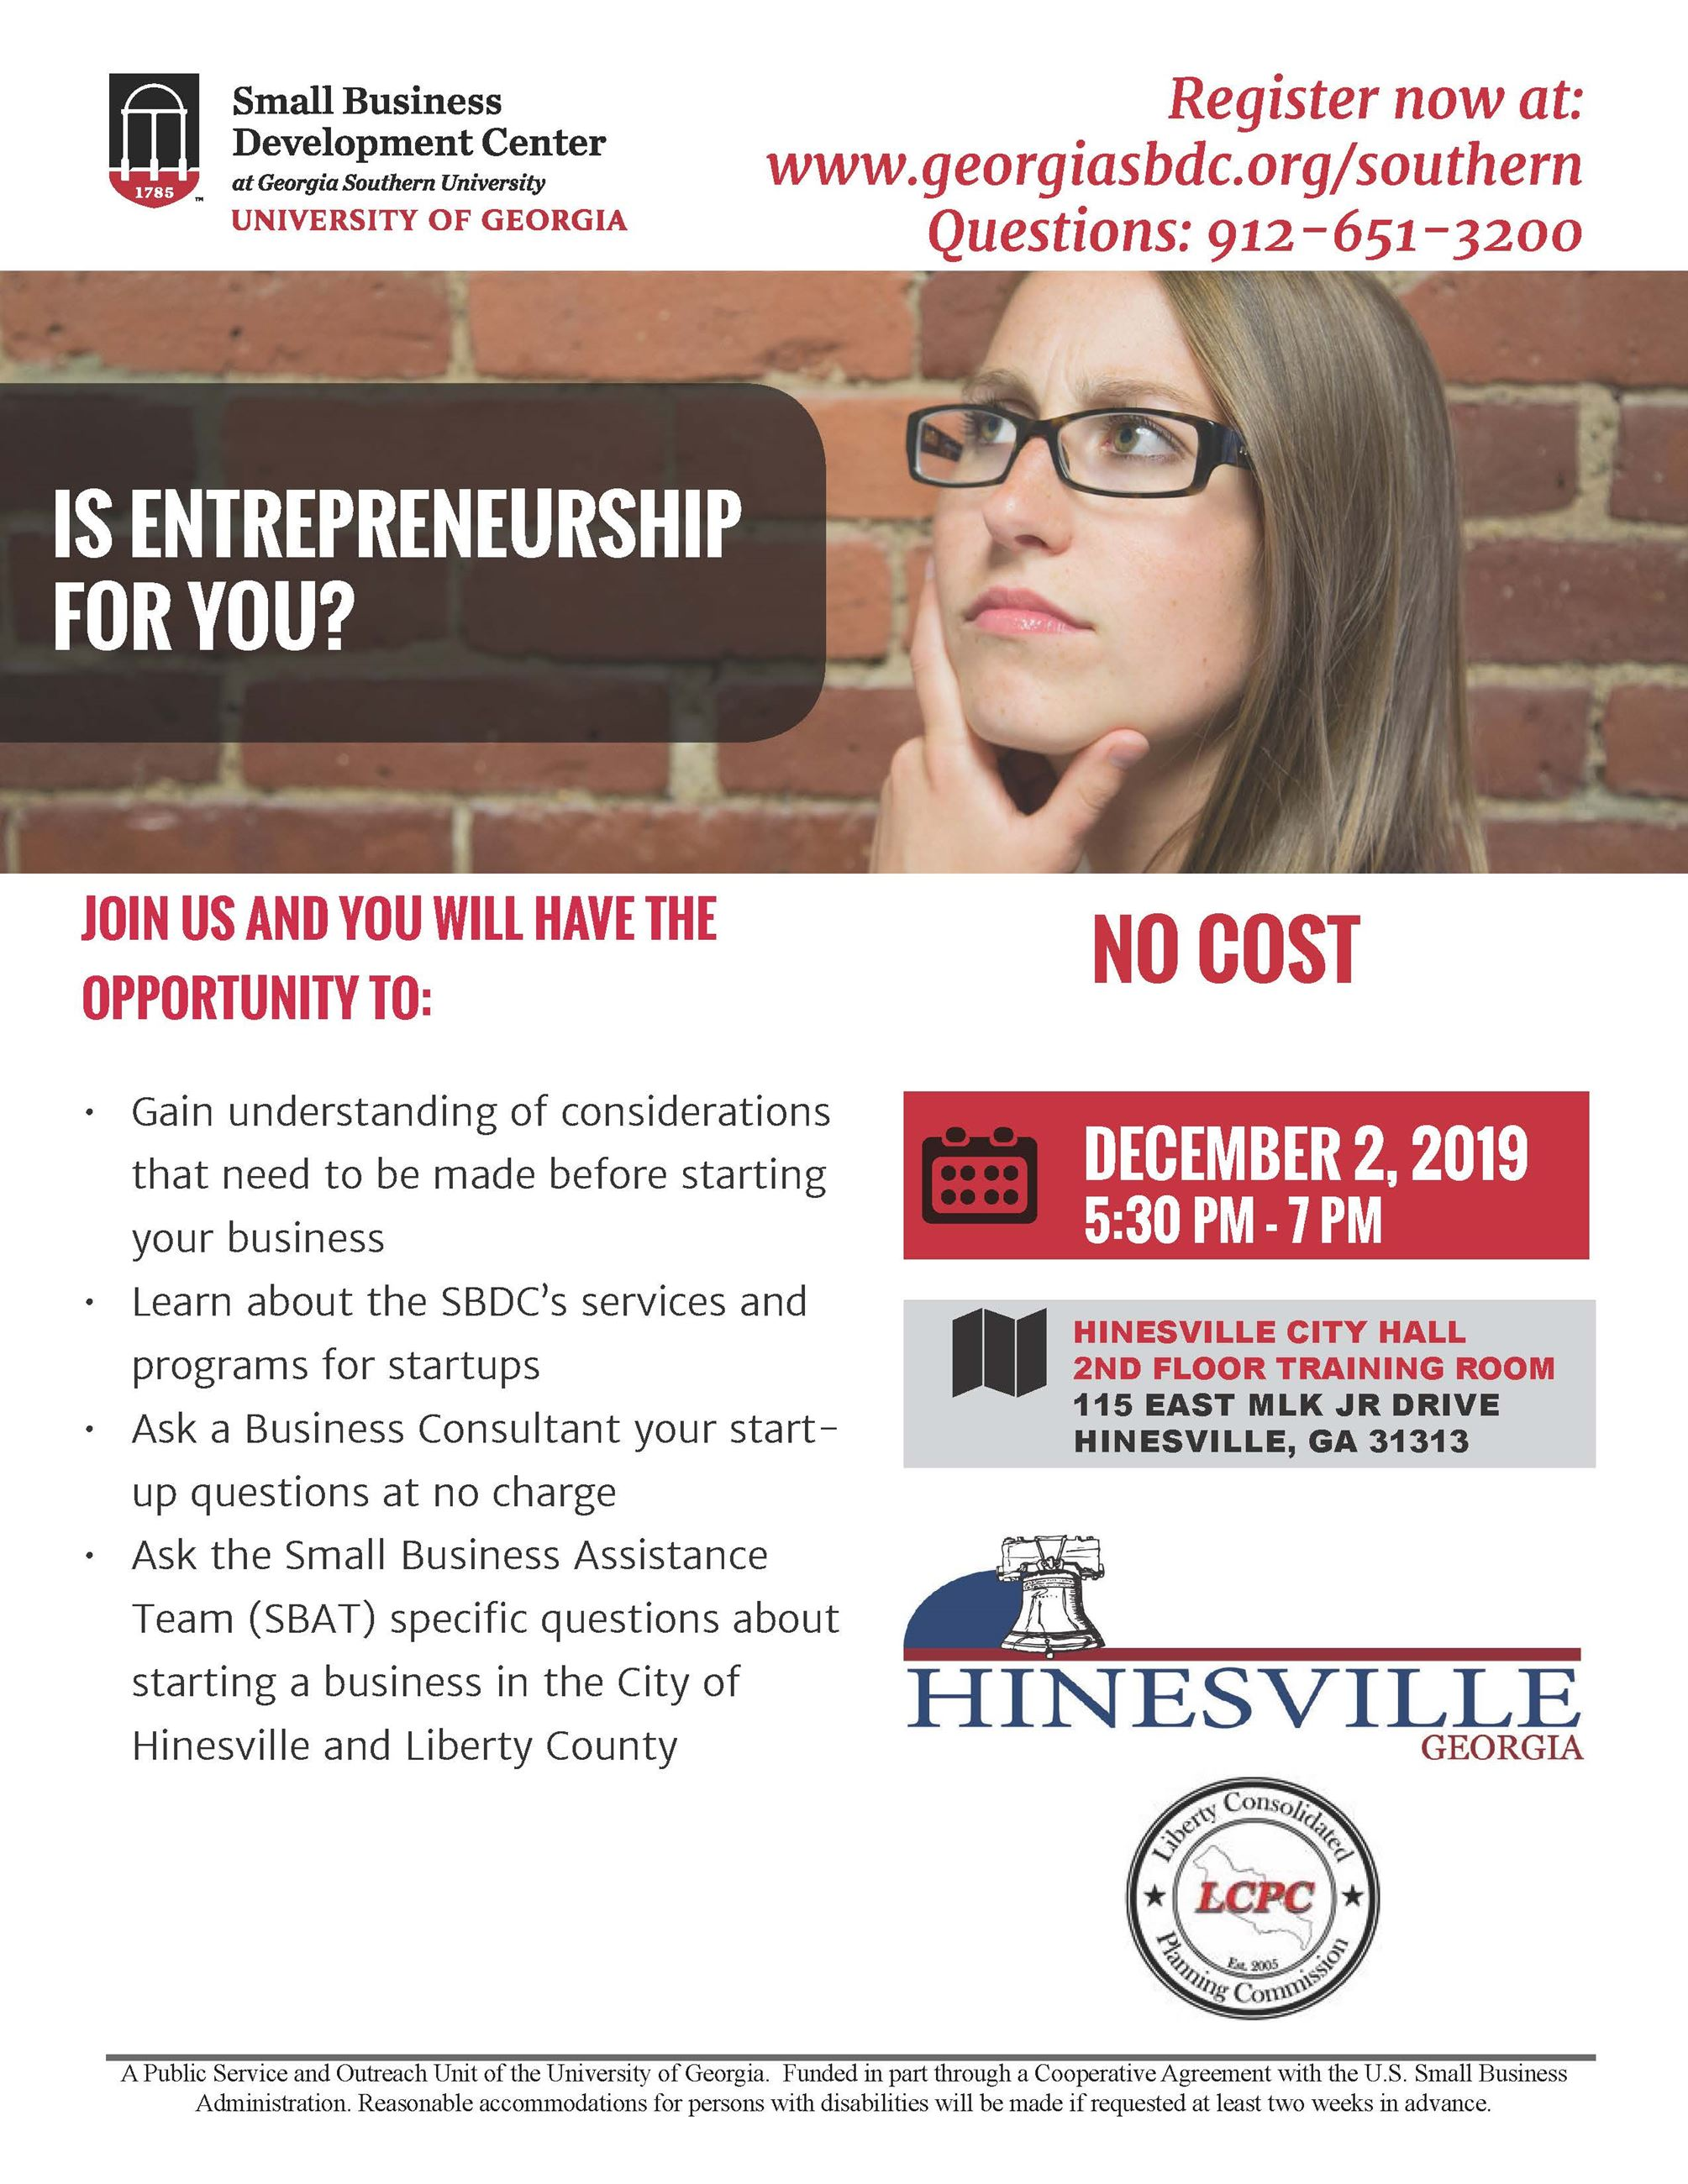 Educational event for entrepreneurs by the Small Business Development Center at Hinesville City Hall